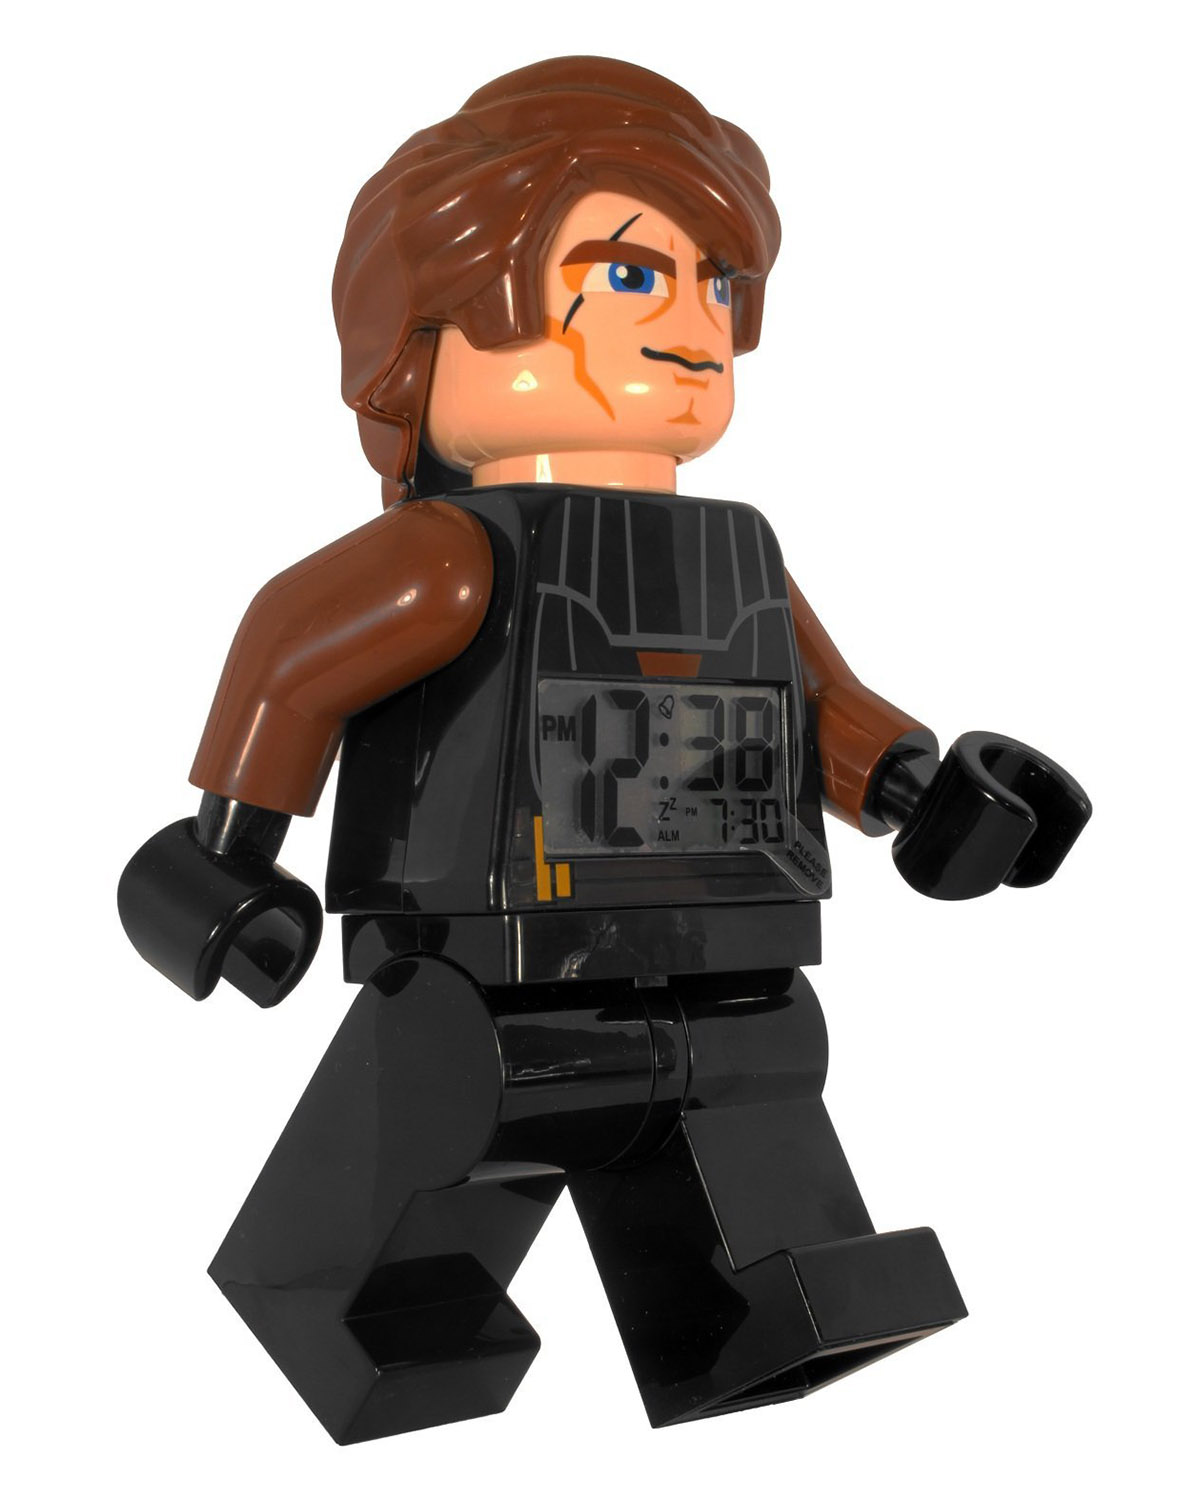 anakin skywalker and stoic ideals Darth vader is one of the most fearsome and stoic figures in the star wars galaxy but deep down, under those layers of leather, metal, and charred flesh, he is still anakin skywalker and anakin .